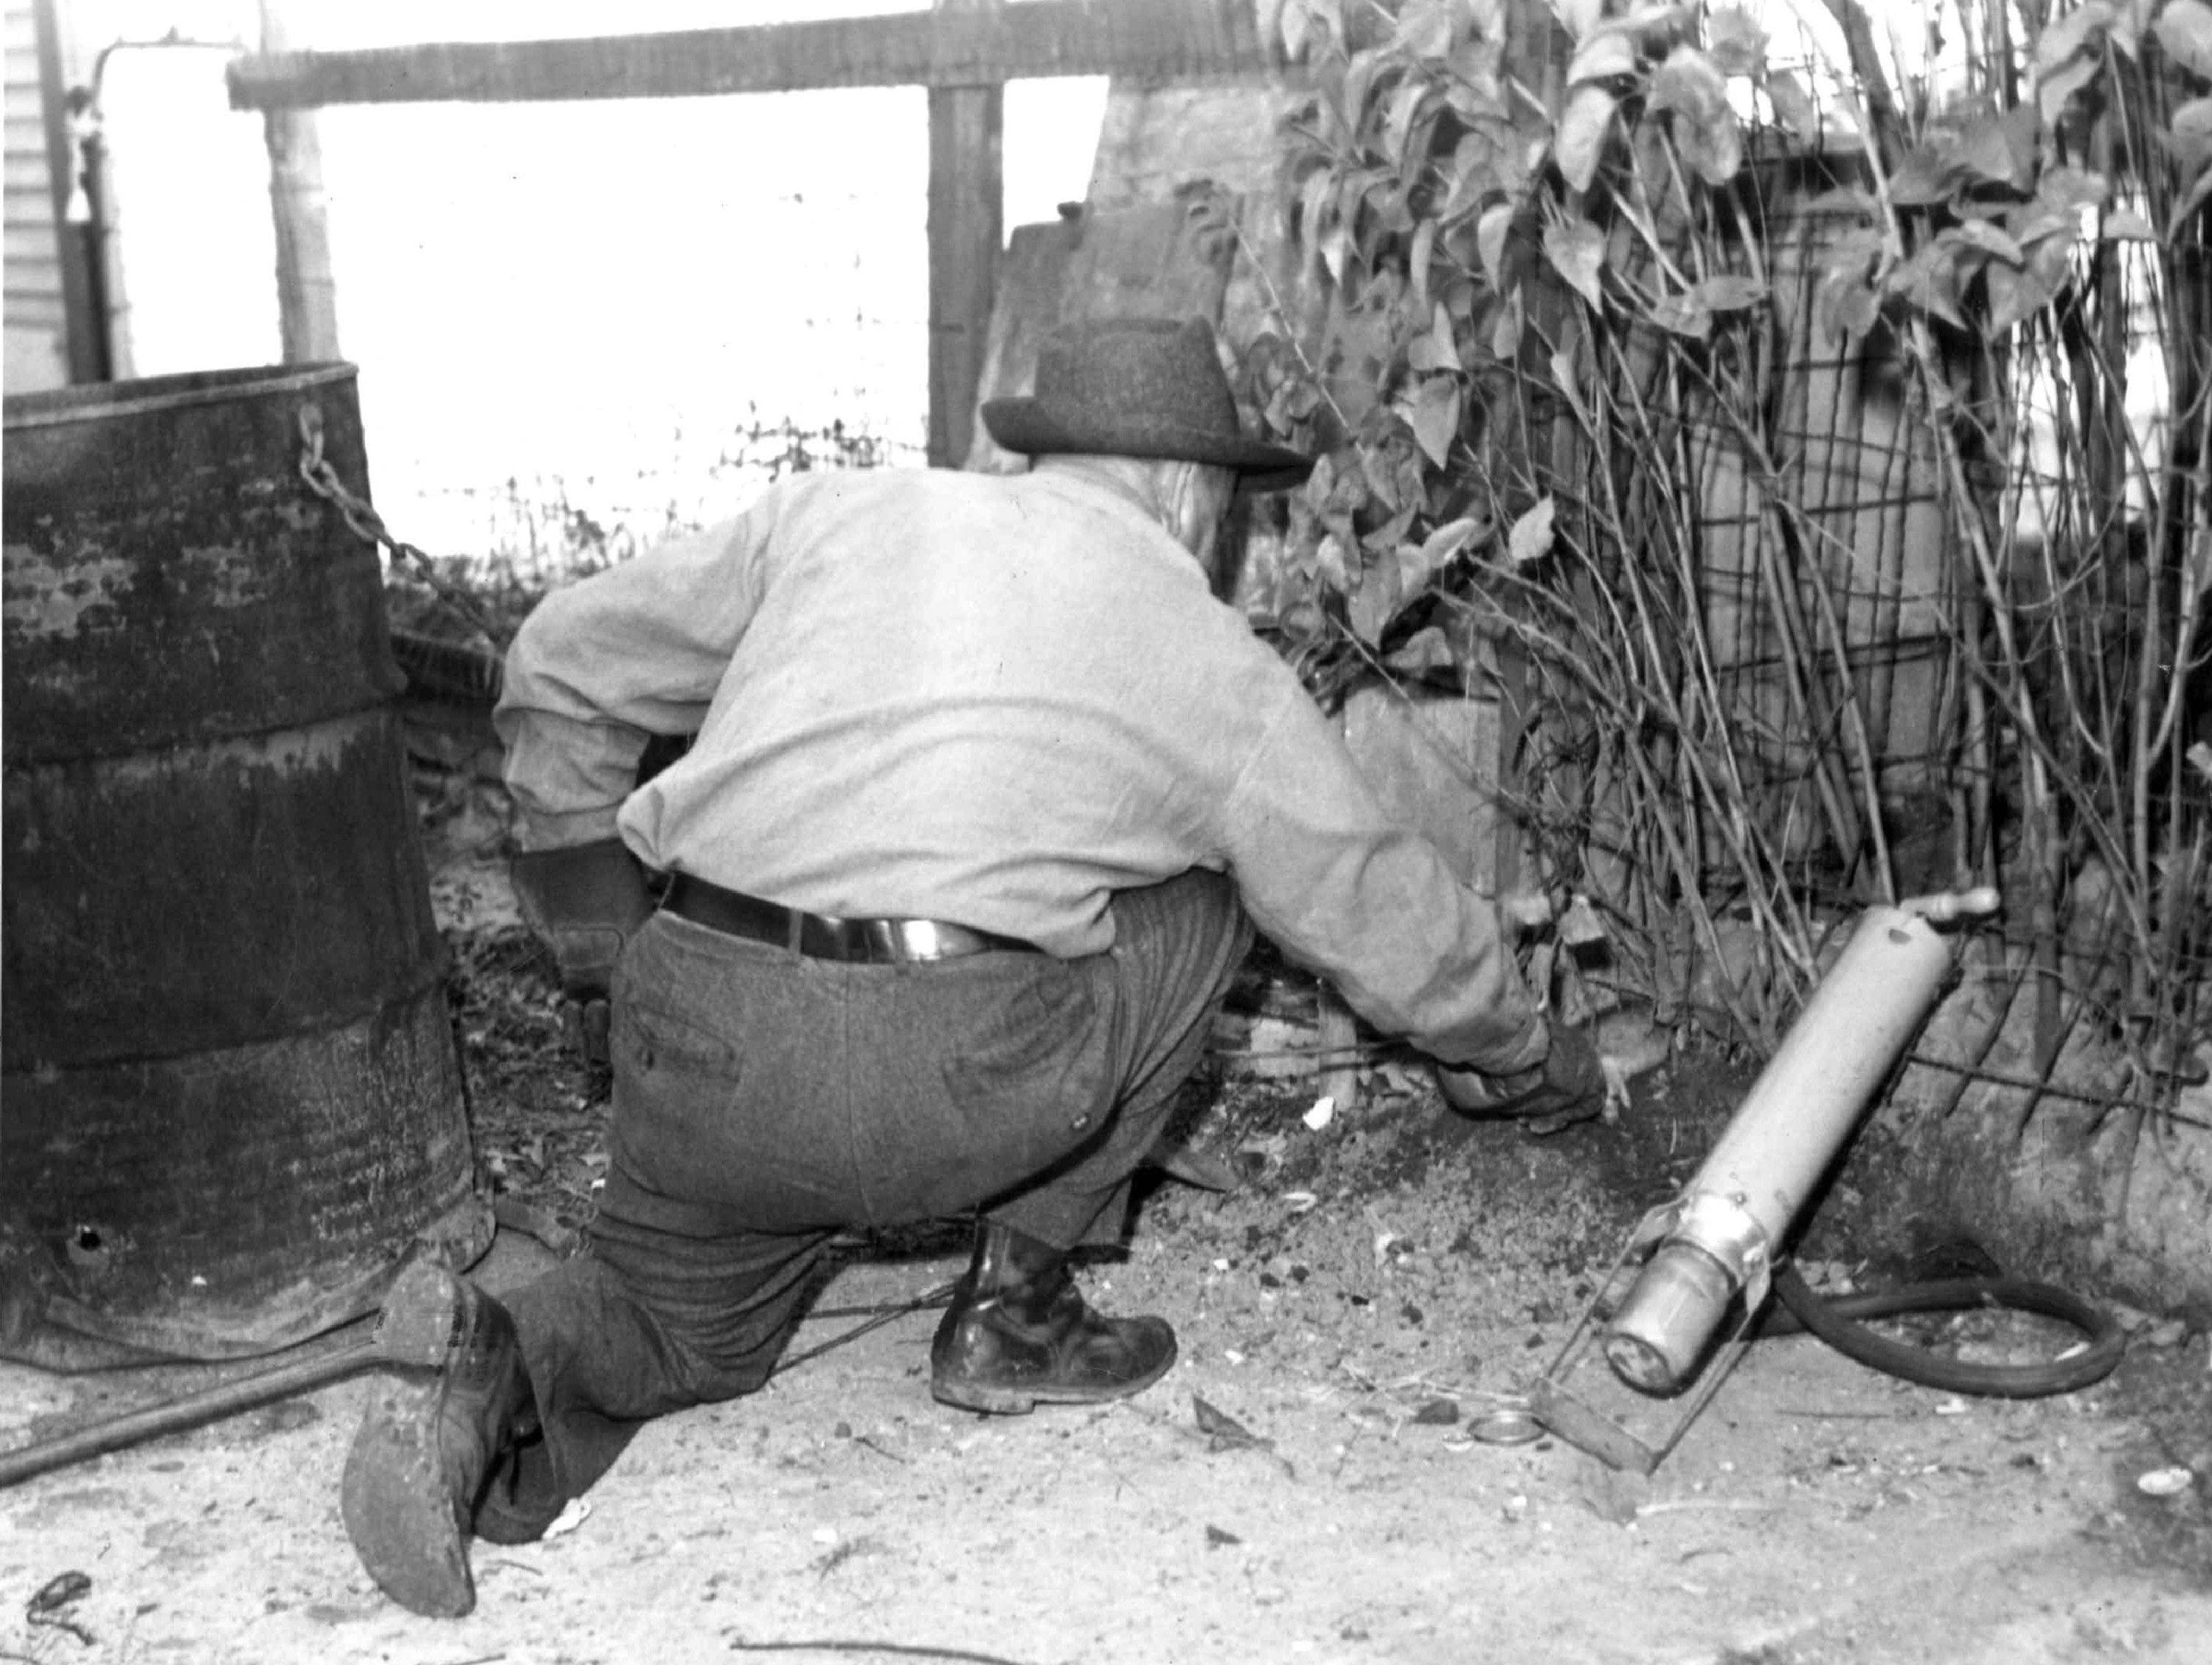 Exterminator Don Rutter grabs a rat that has been stunned by a cyanide pump on the west side of Detroit.